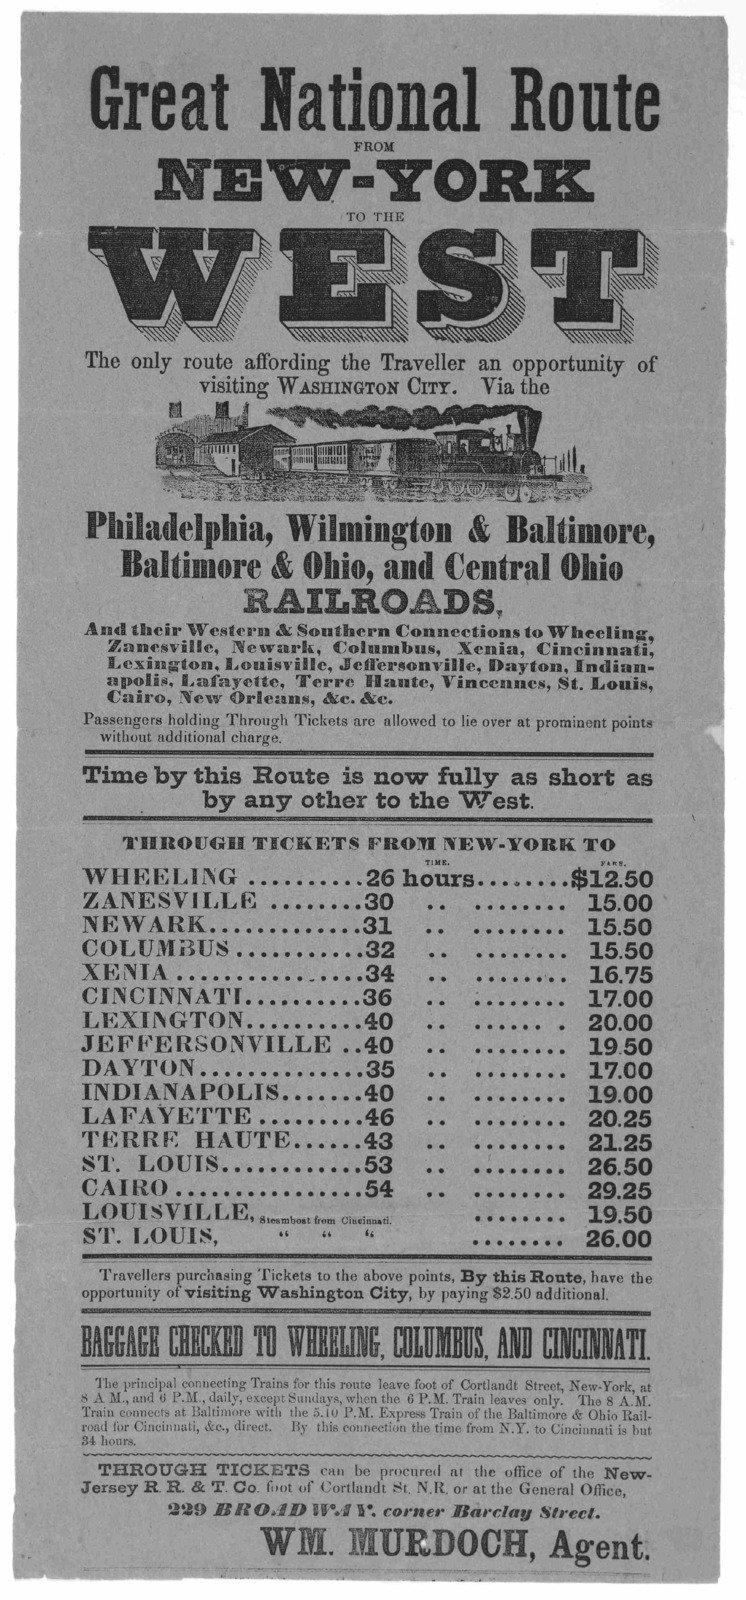 Great national route from New York to the West. The only route affording the traveller an opportunity of visiting Washington City. Via the Philadelphia, Wilmington & Baltimore, Baltimore & Ohio, and Central Ohio railroads ... [New York. n. d.].